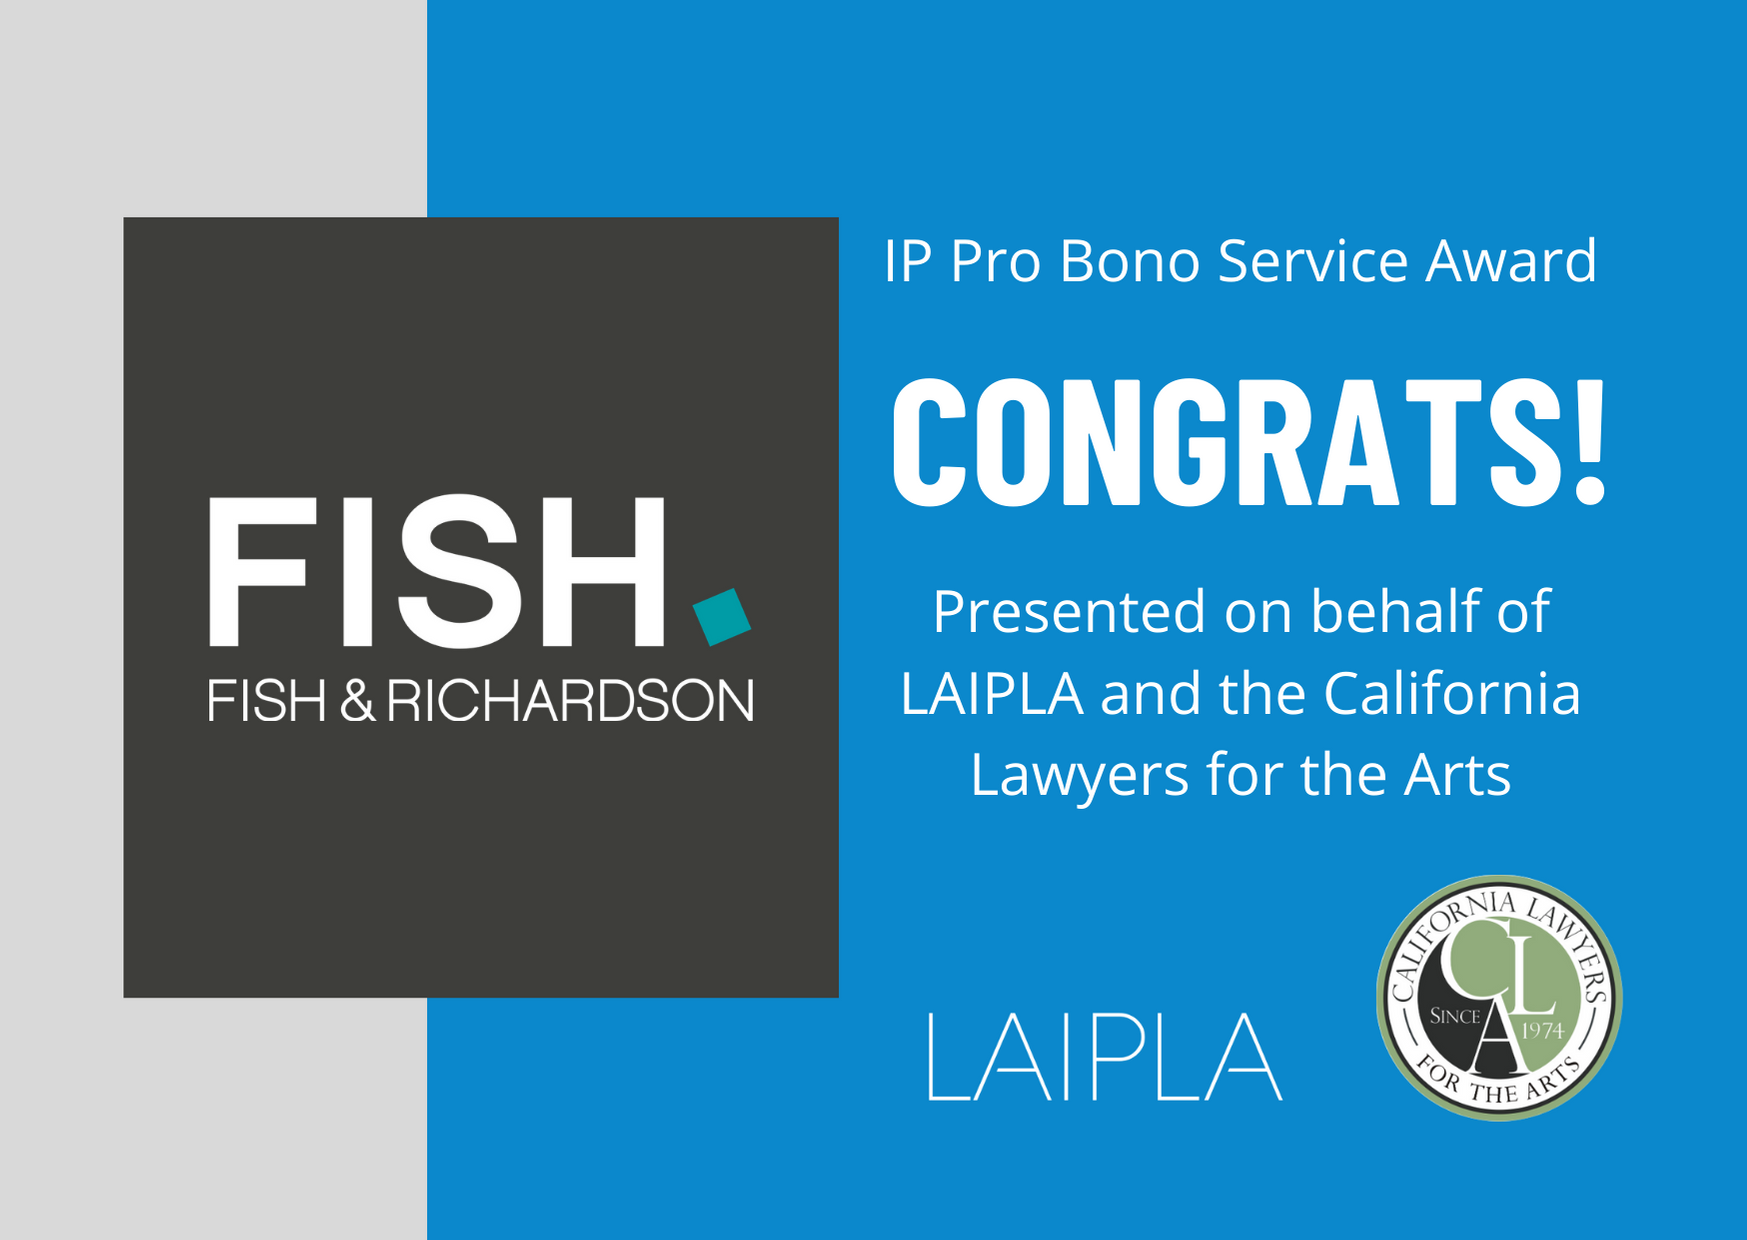 Fish & Richardson - Recipient of the IP Pro Bono Service Award, presented on behalf of LAIPLA and the California Lawyers for the Arts